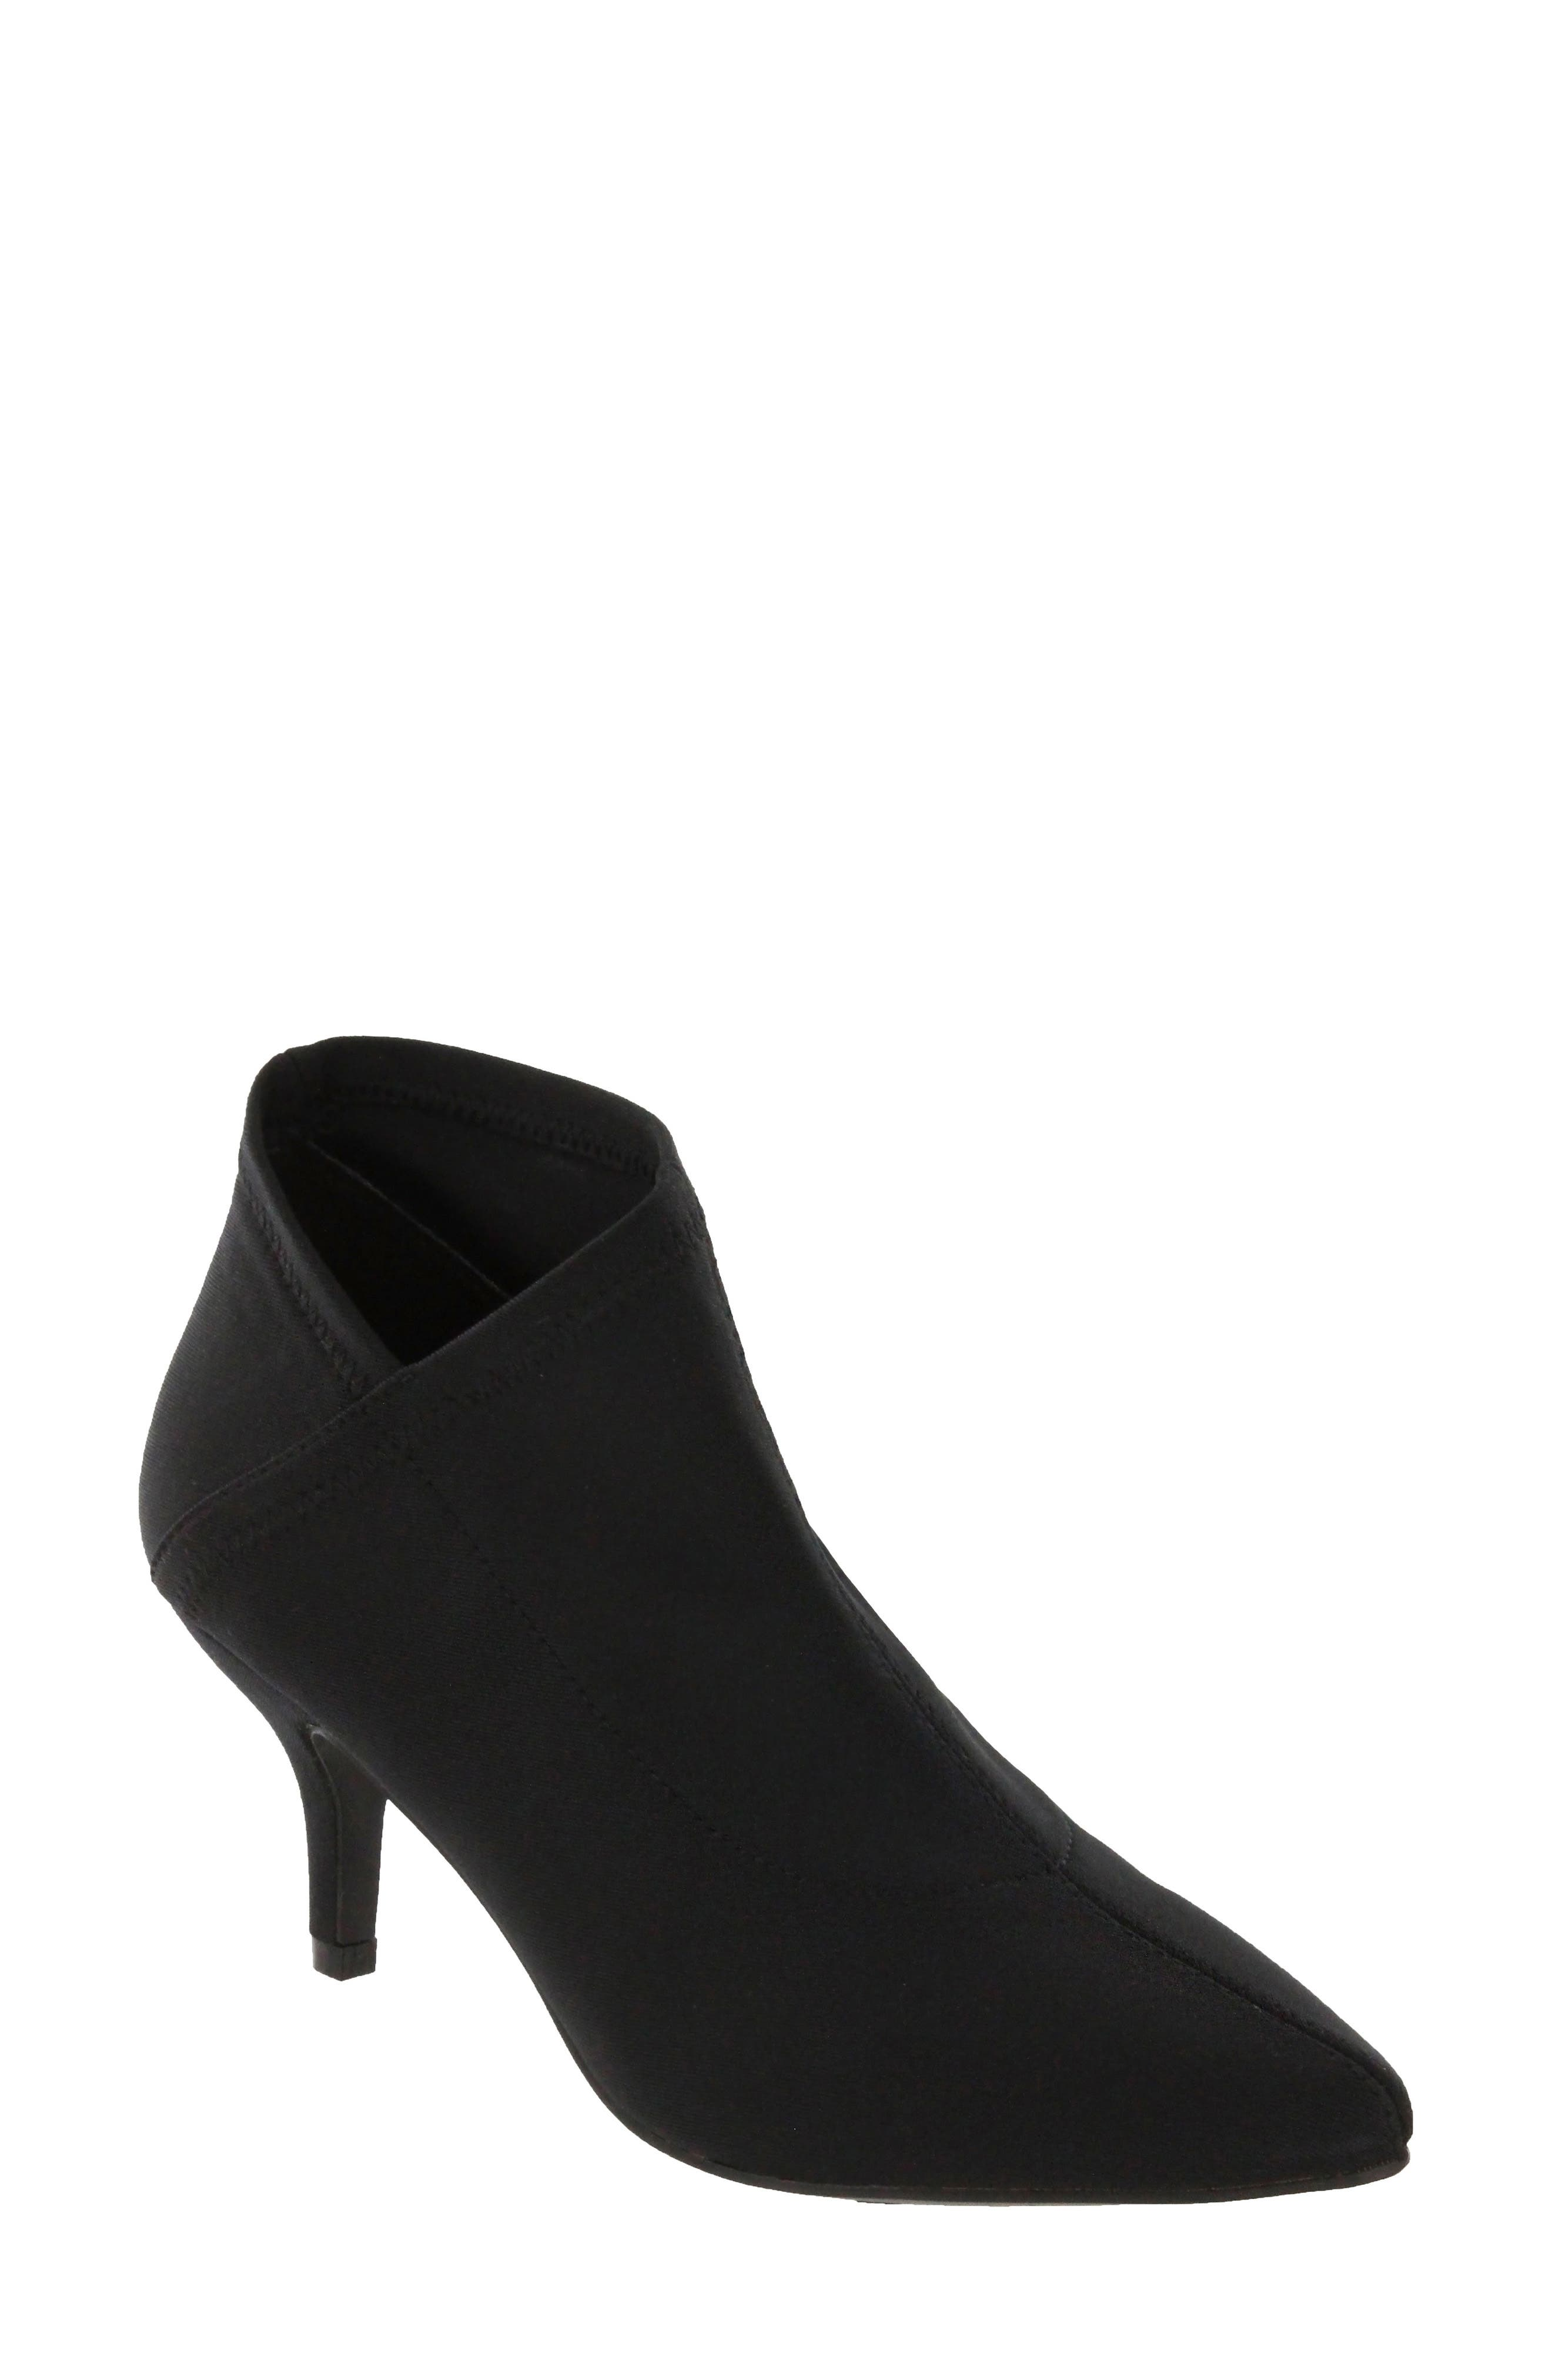 Image of MIA Charleese Stretch Ankle Boot